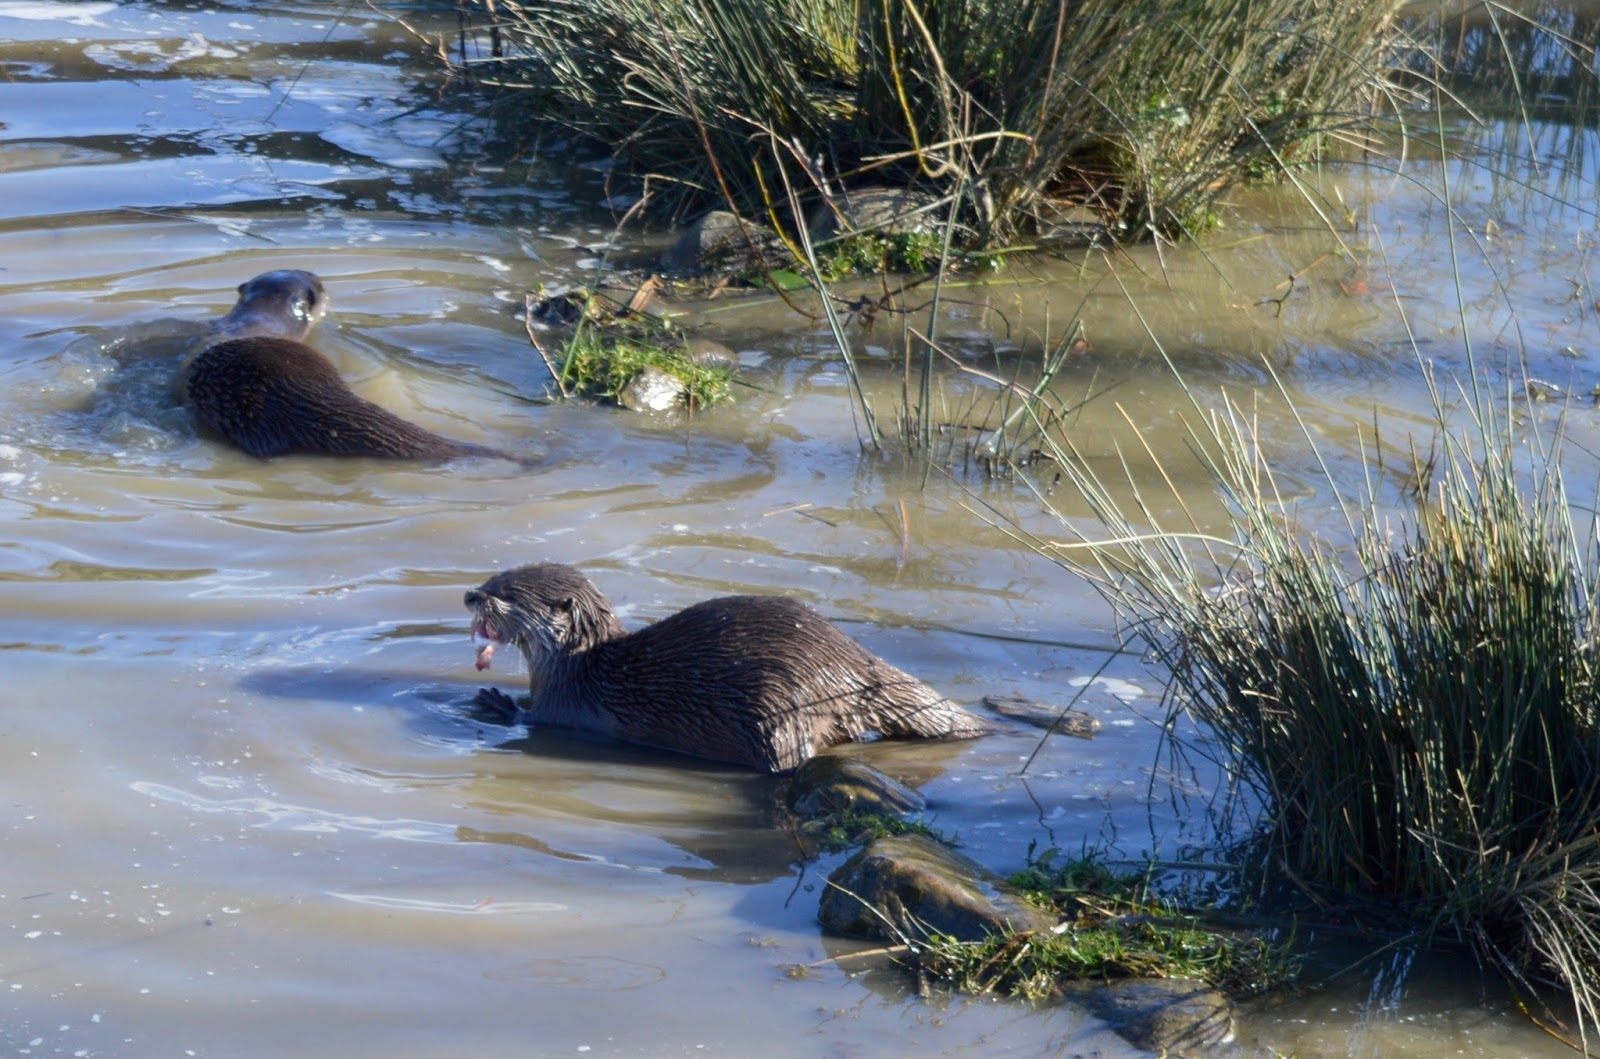 WWT Washington Wetland Centre | An Accessible North East Day Out for the Whole Family - otter feeding